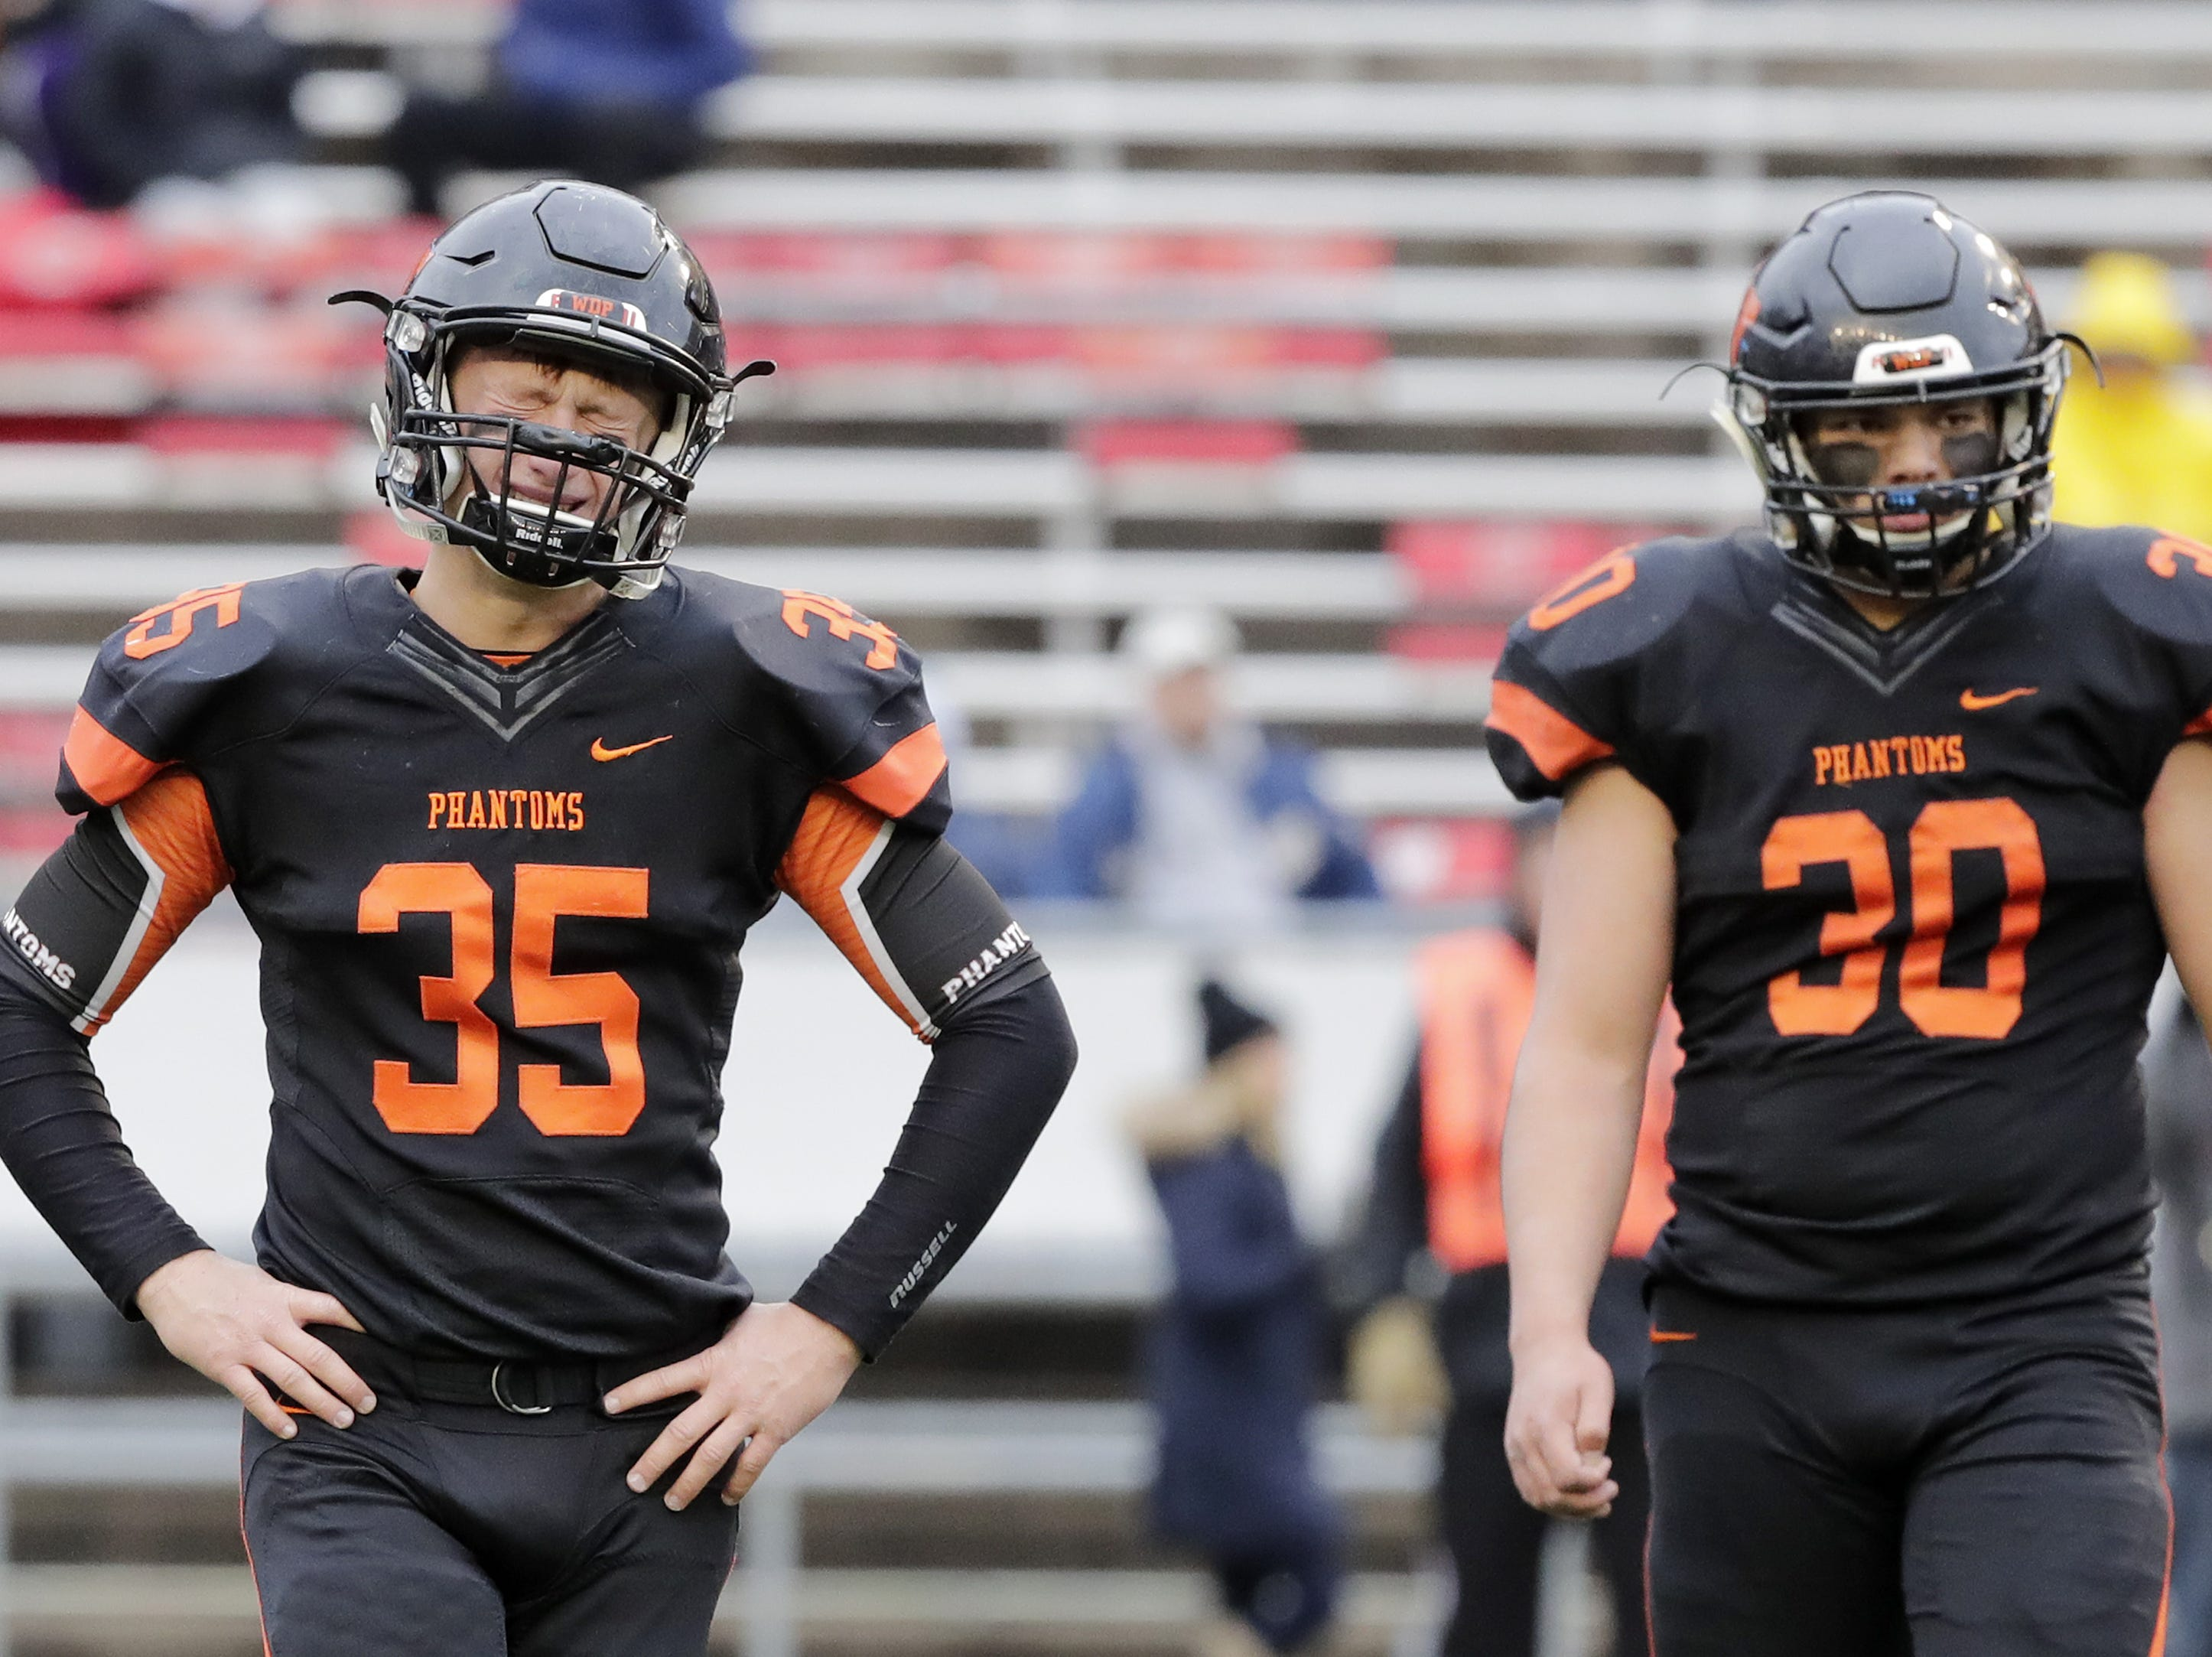 West De Pere's Alex Spitzer (35) and Cody Cavil (30) leave the field after the Phantoms lost to Catholic Memorial in the WIAA Division 3 championship game at Camp Randall Stadium on Friday, November 16, 2018 in Madison, Wis.